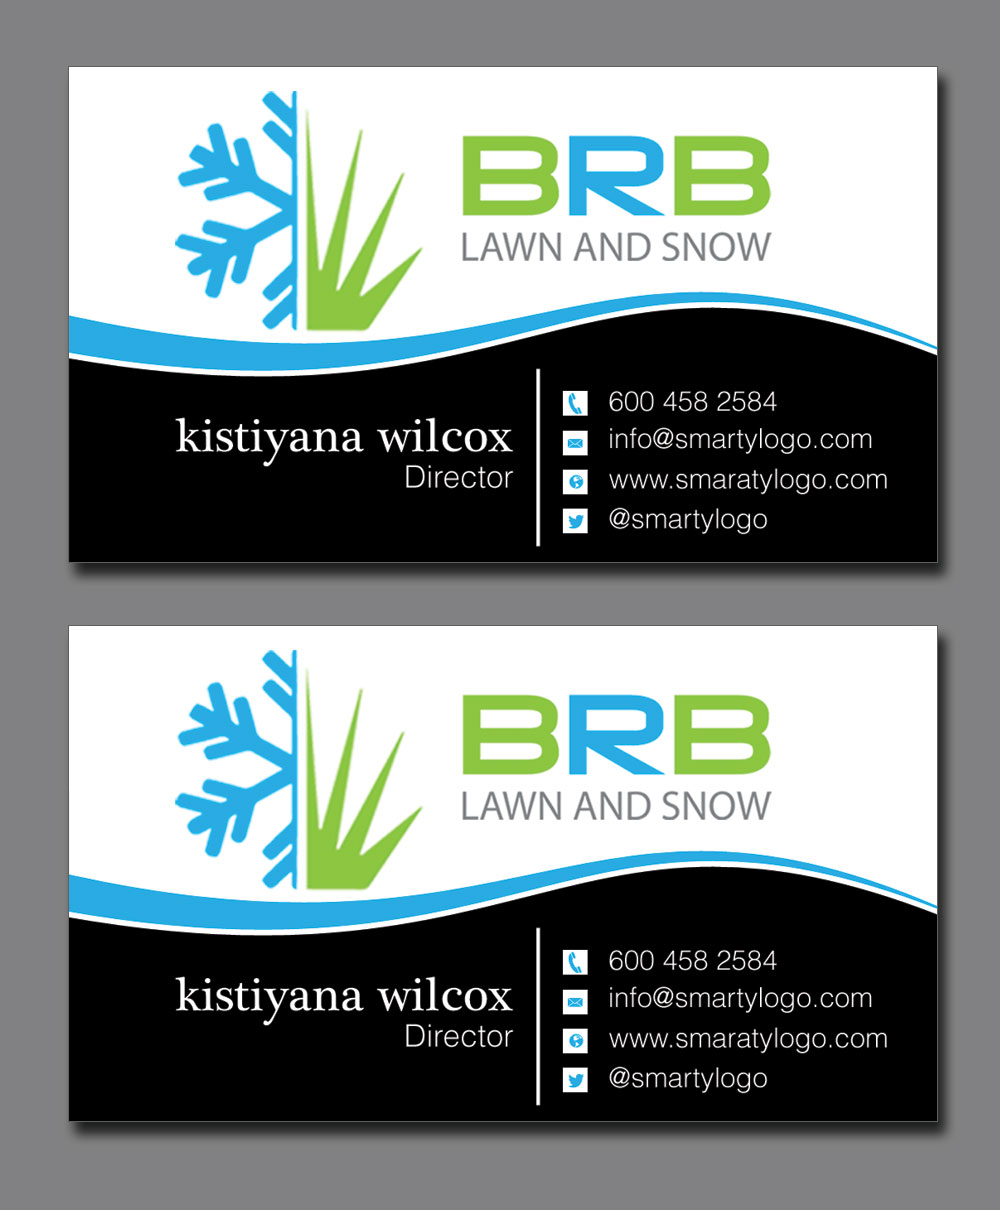 Business Card Design By Lanka Ama For Lawn Care And Snow Removal Company